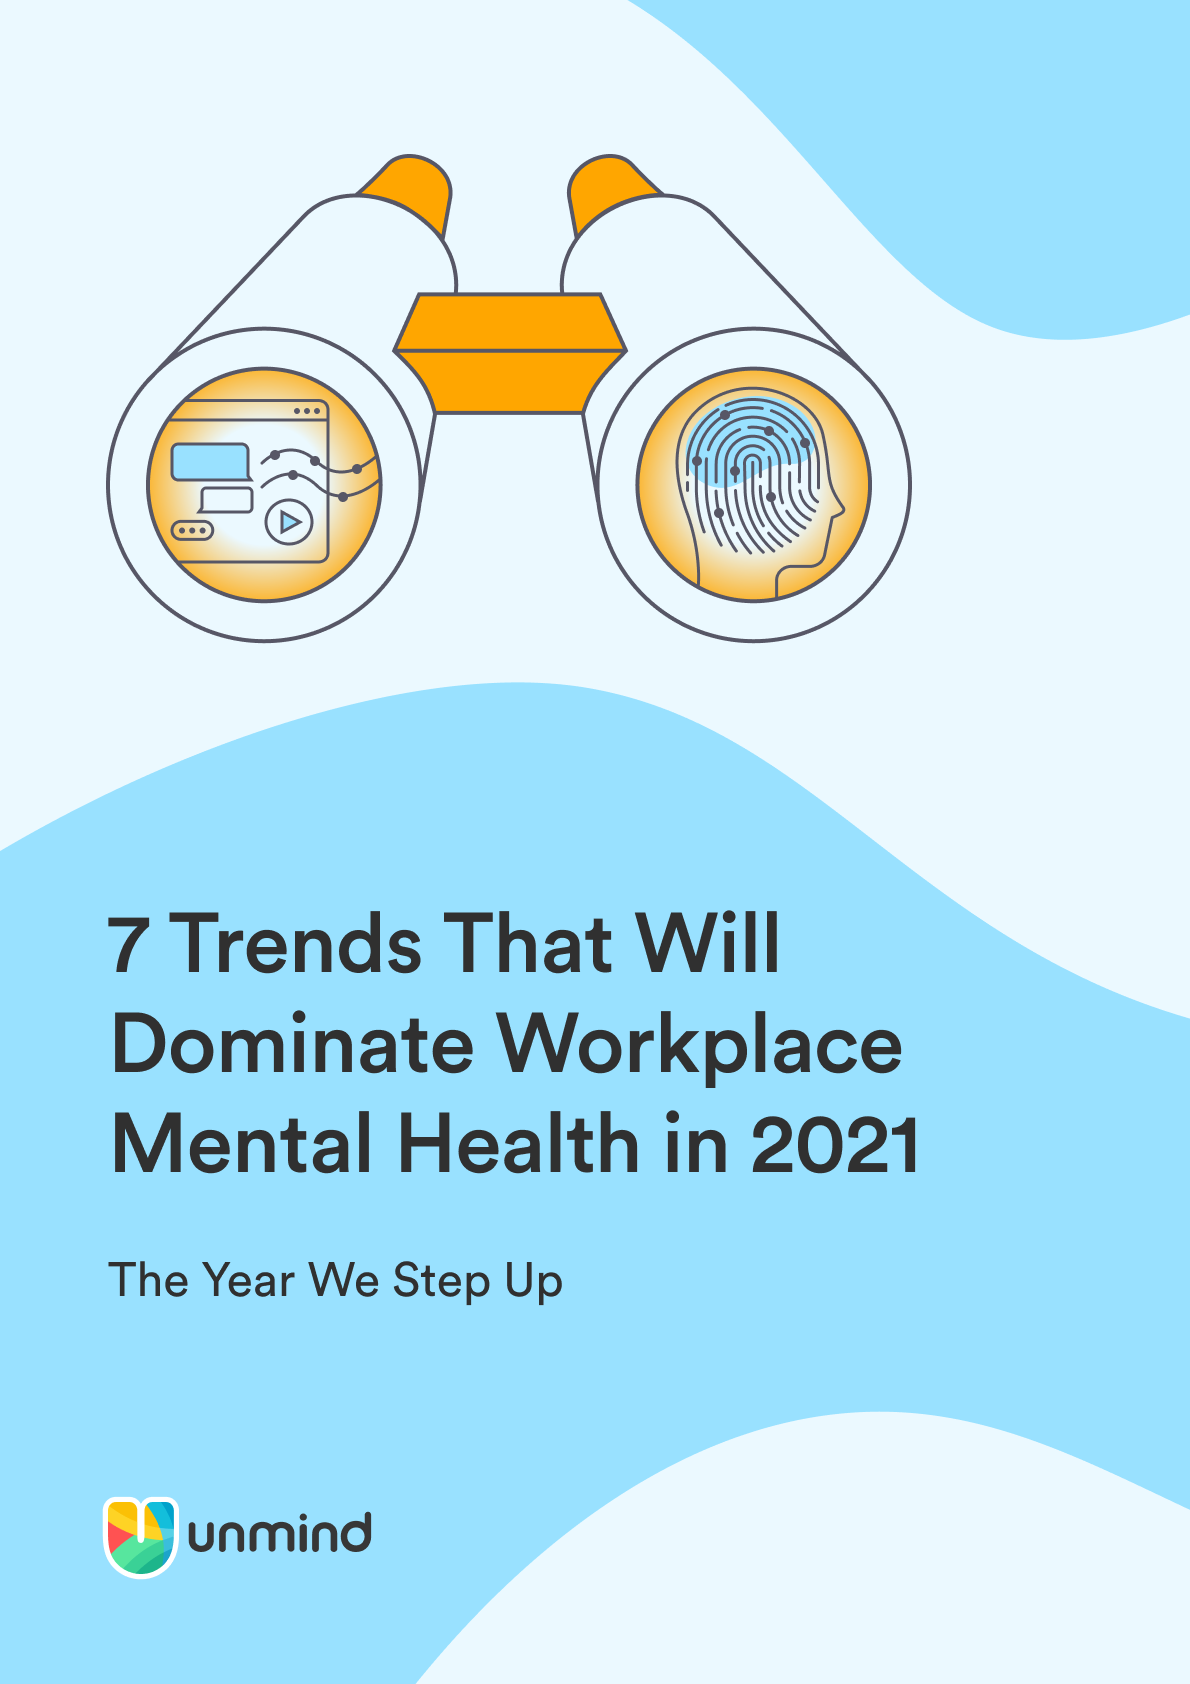 7 Trends That Will Dominate Workplace Mental Health in 2021 01